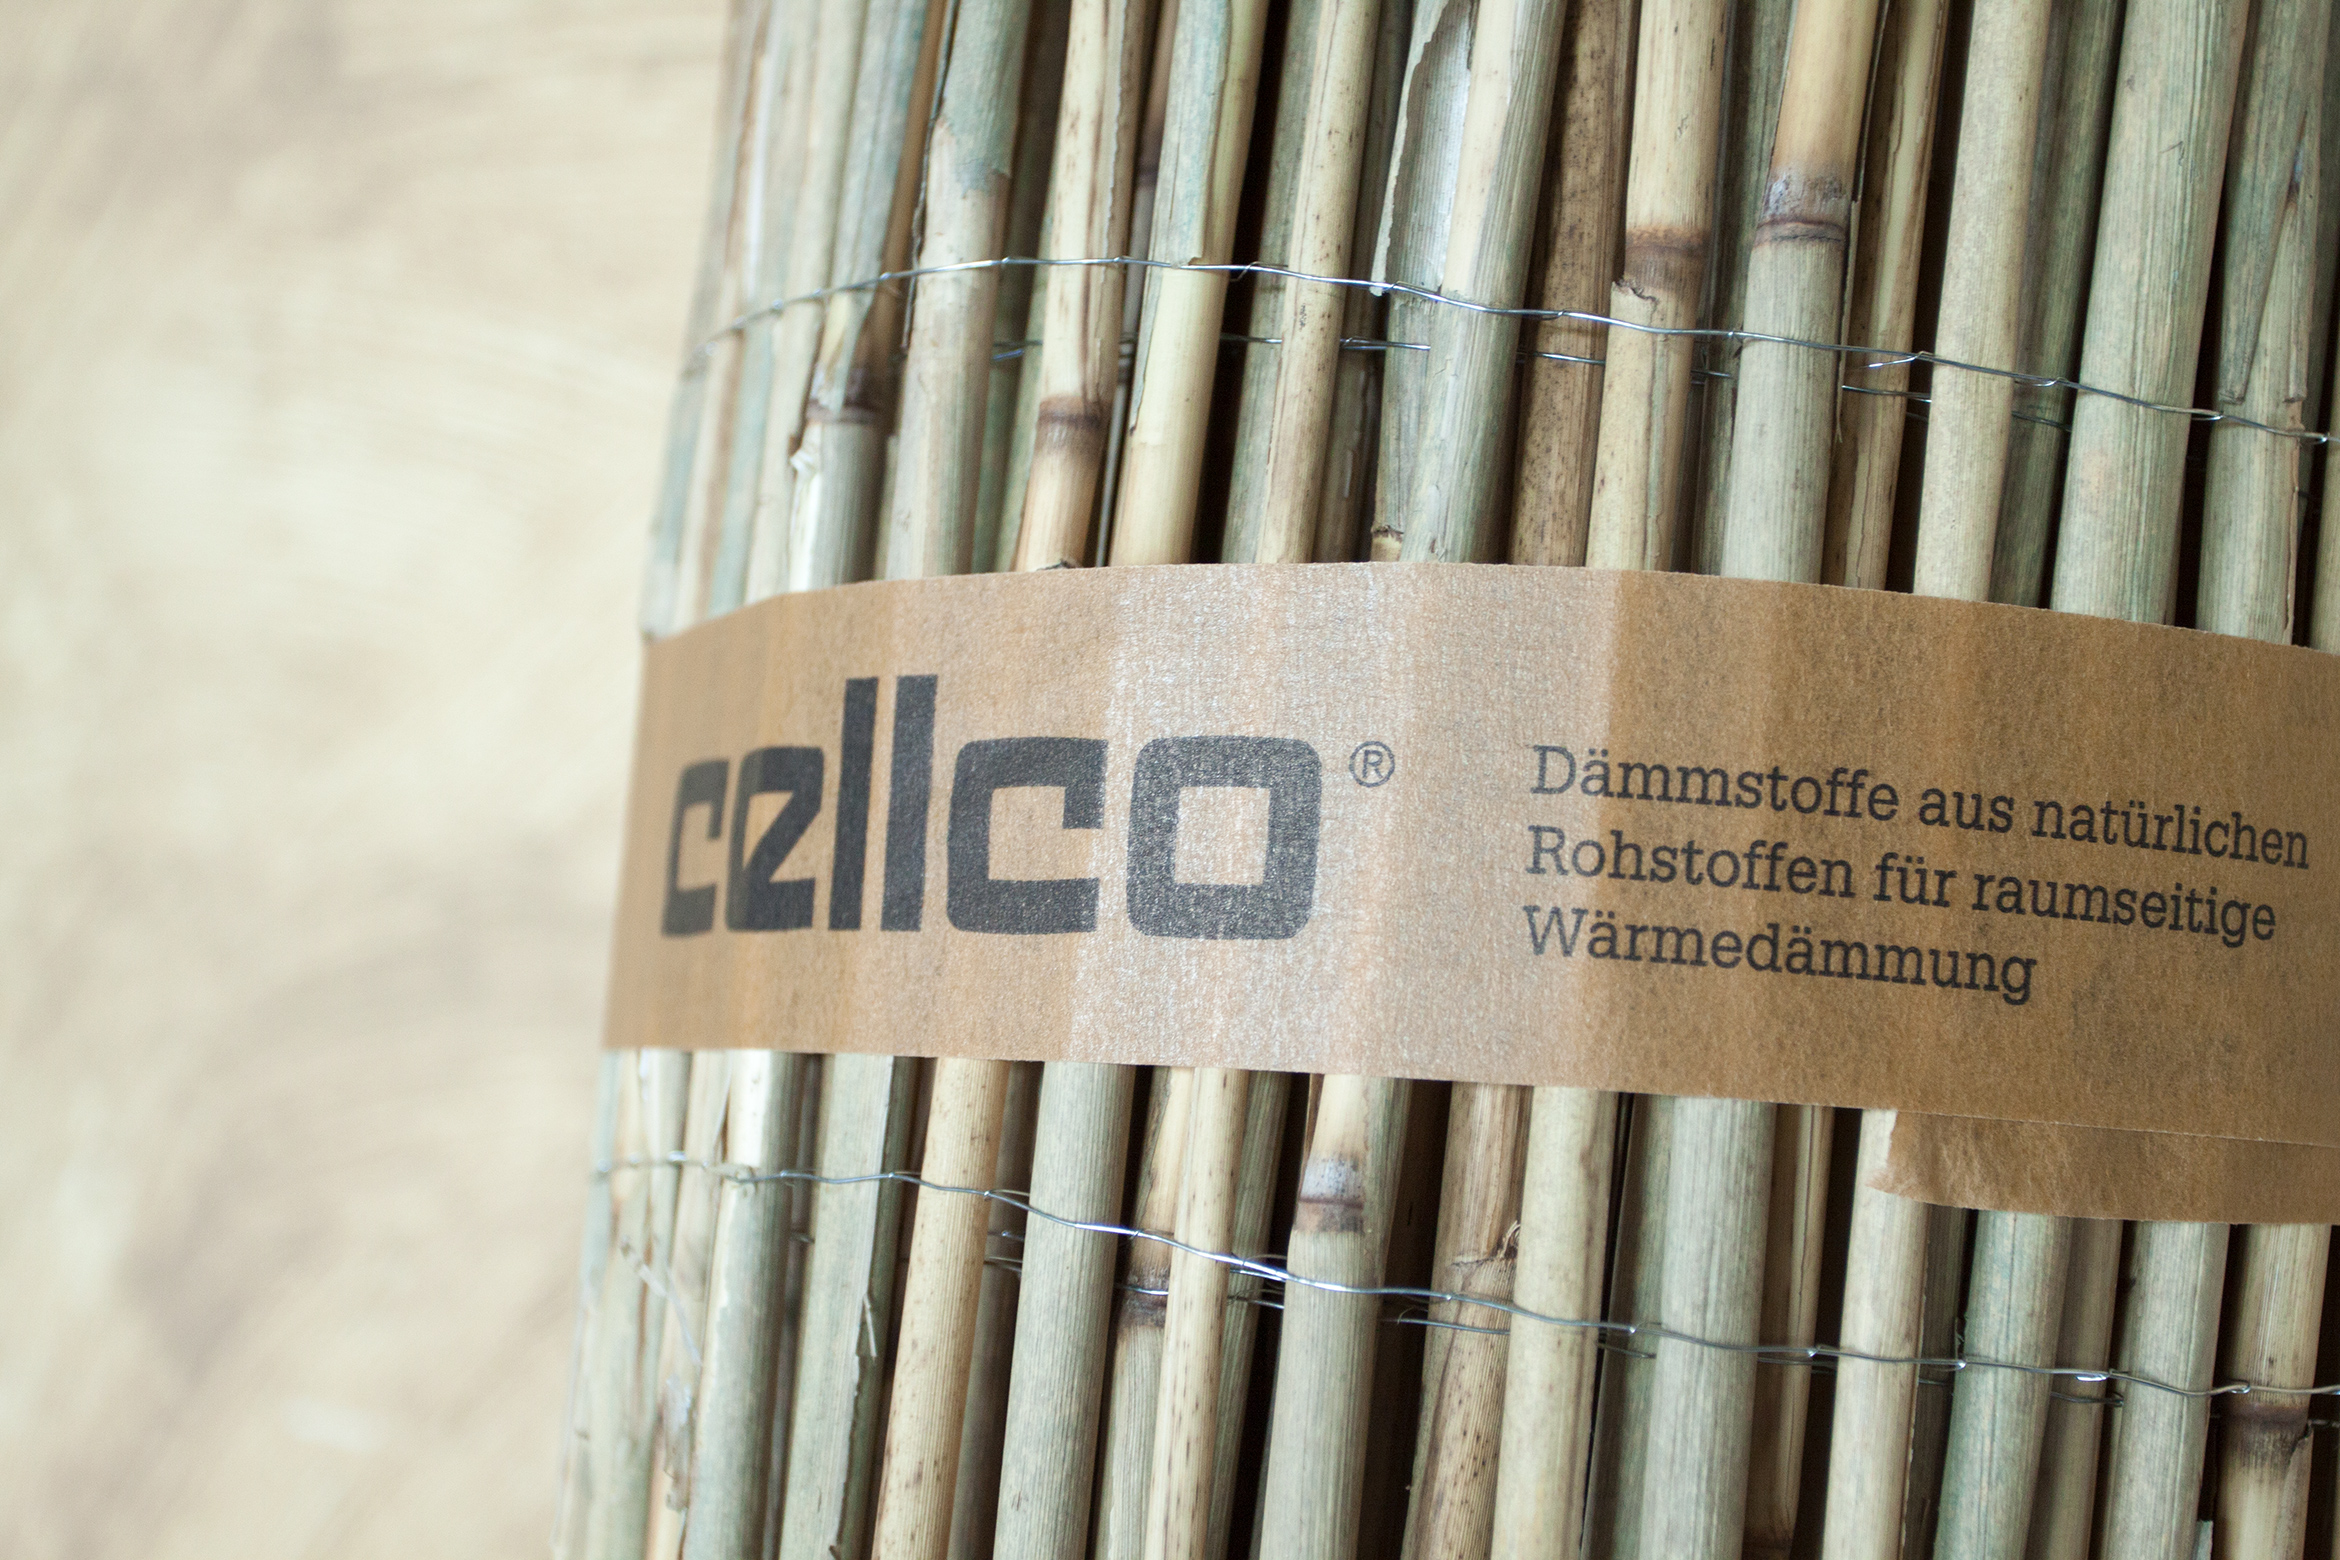 cellco-product-4174